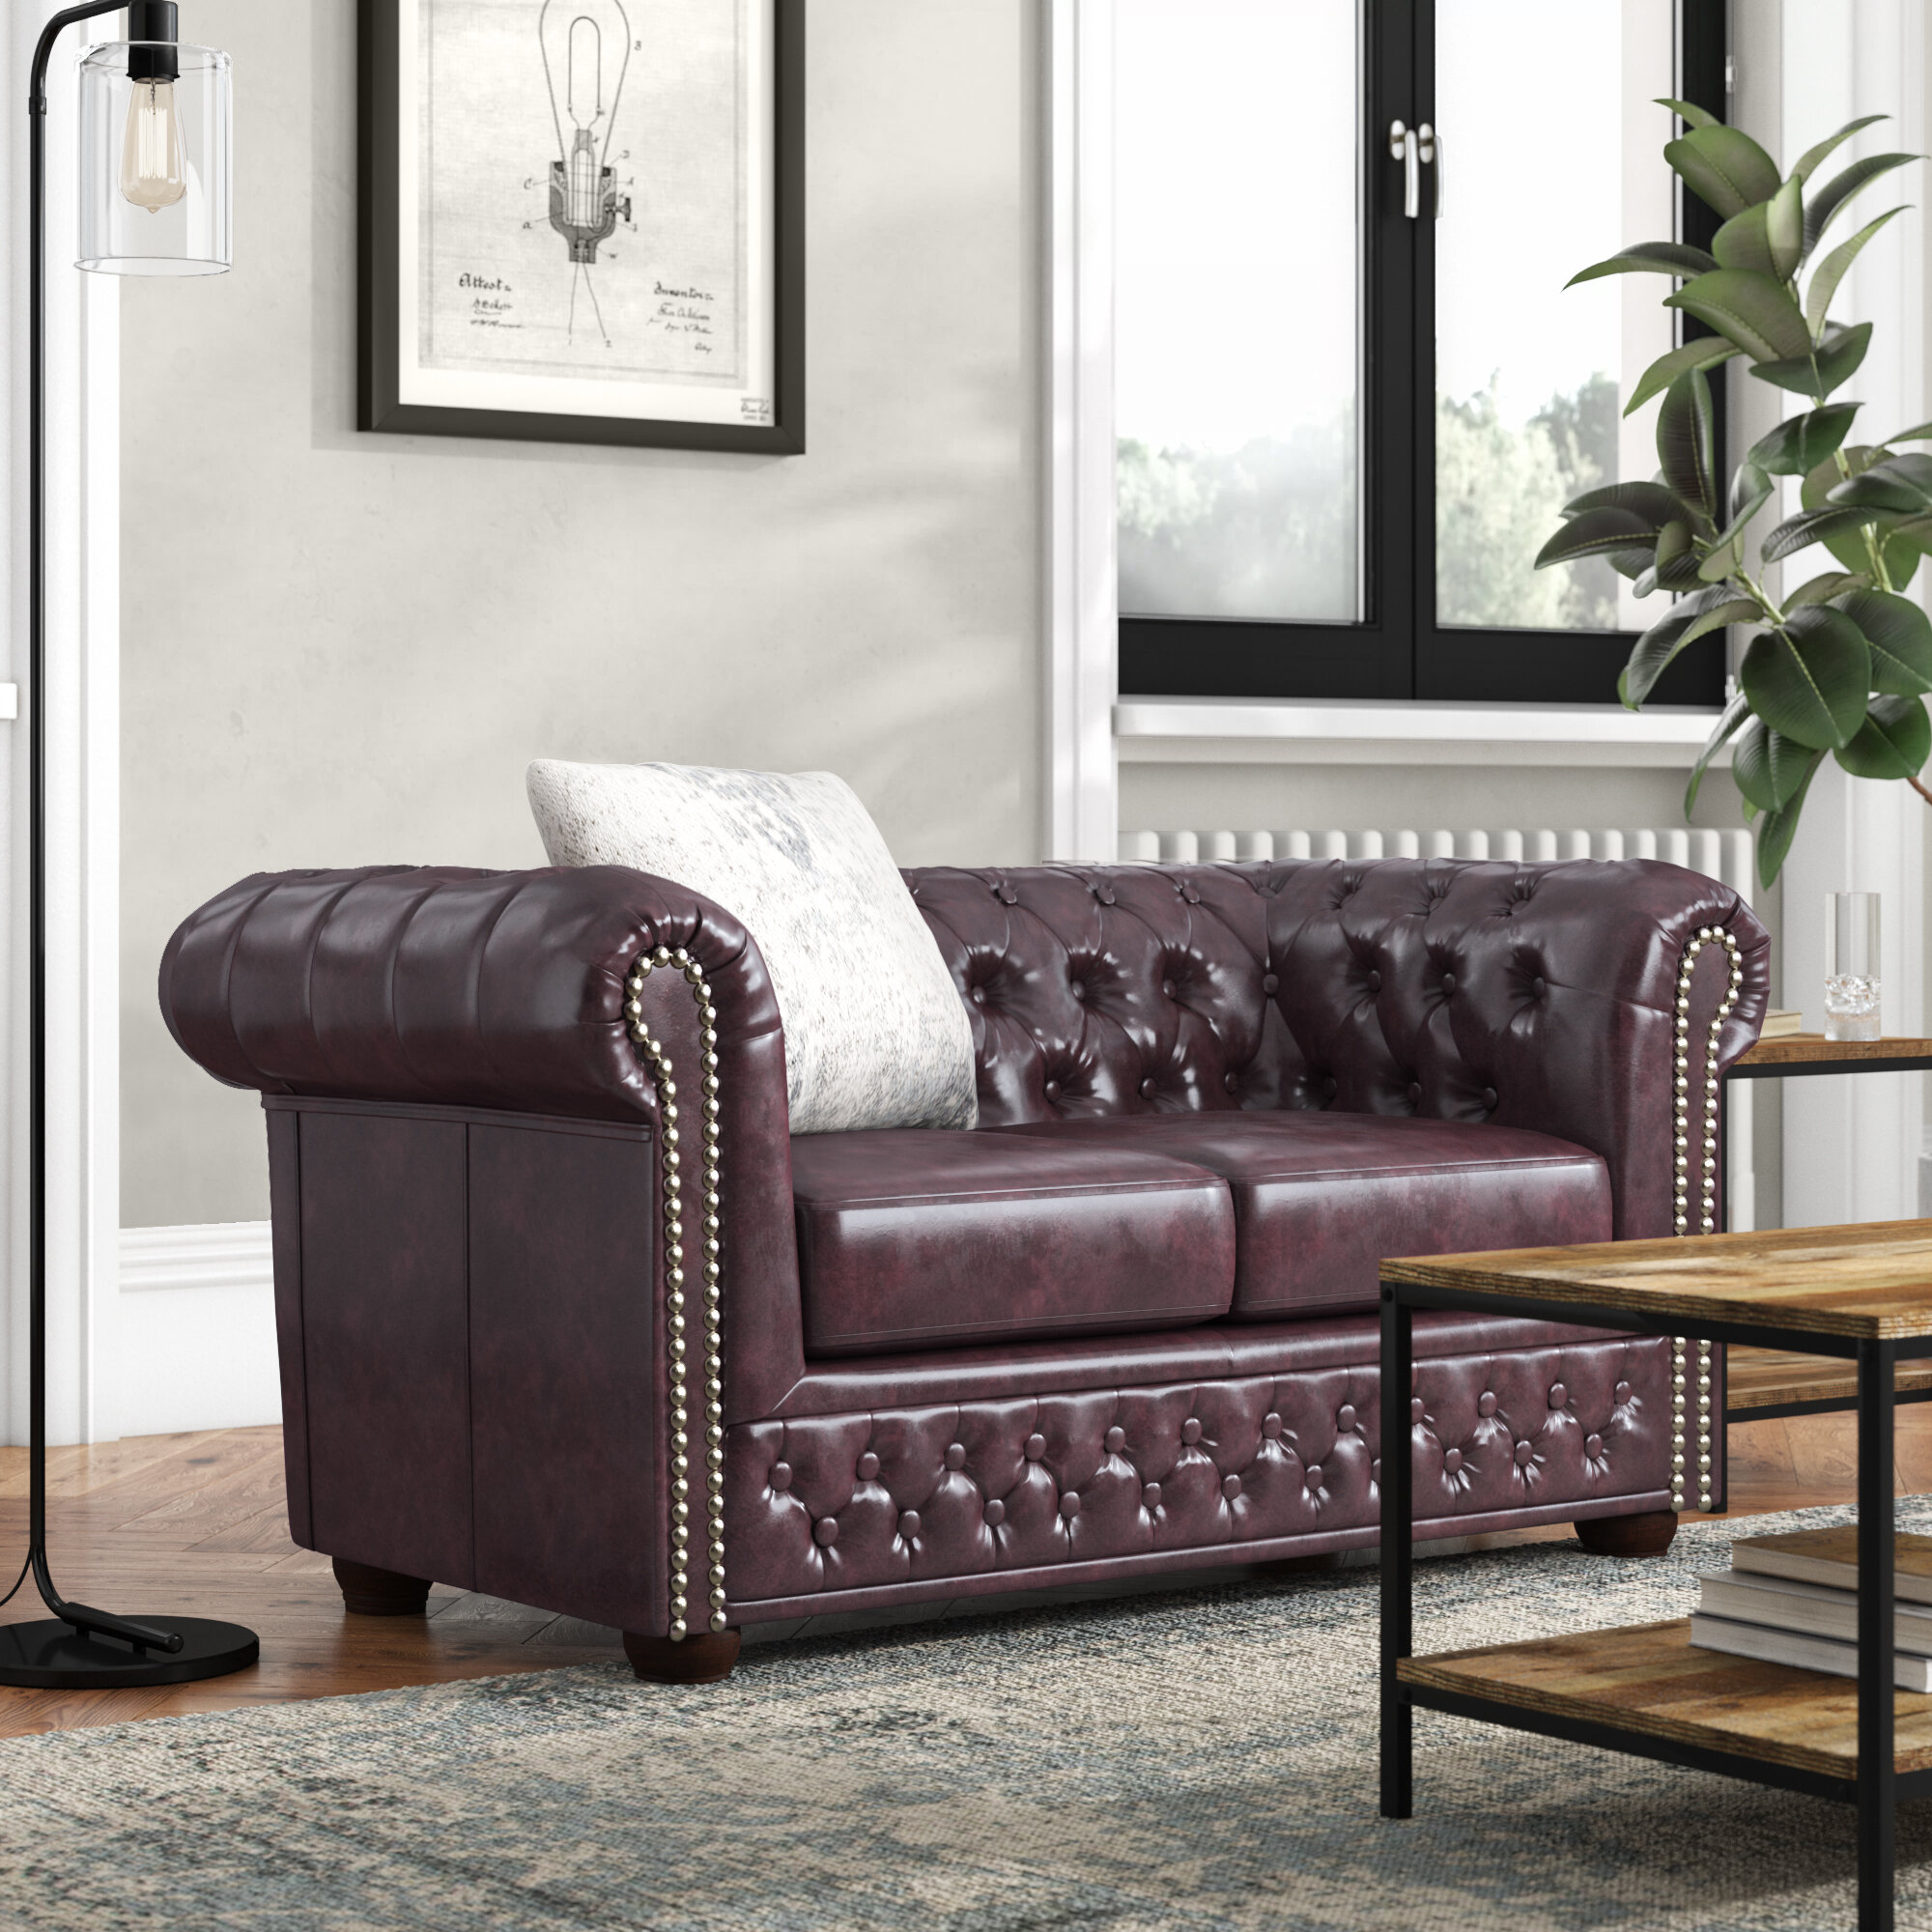 Prime Williston Forge Abtao 2 Seater Chesterfield Sofa Pabps2019 Chair Design Images Pabps2019Com